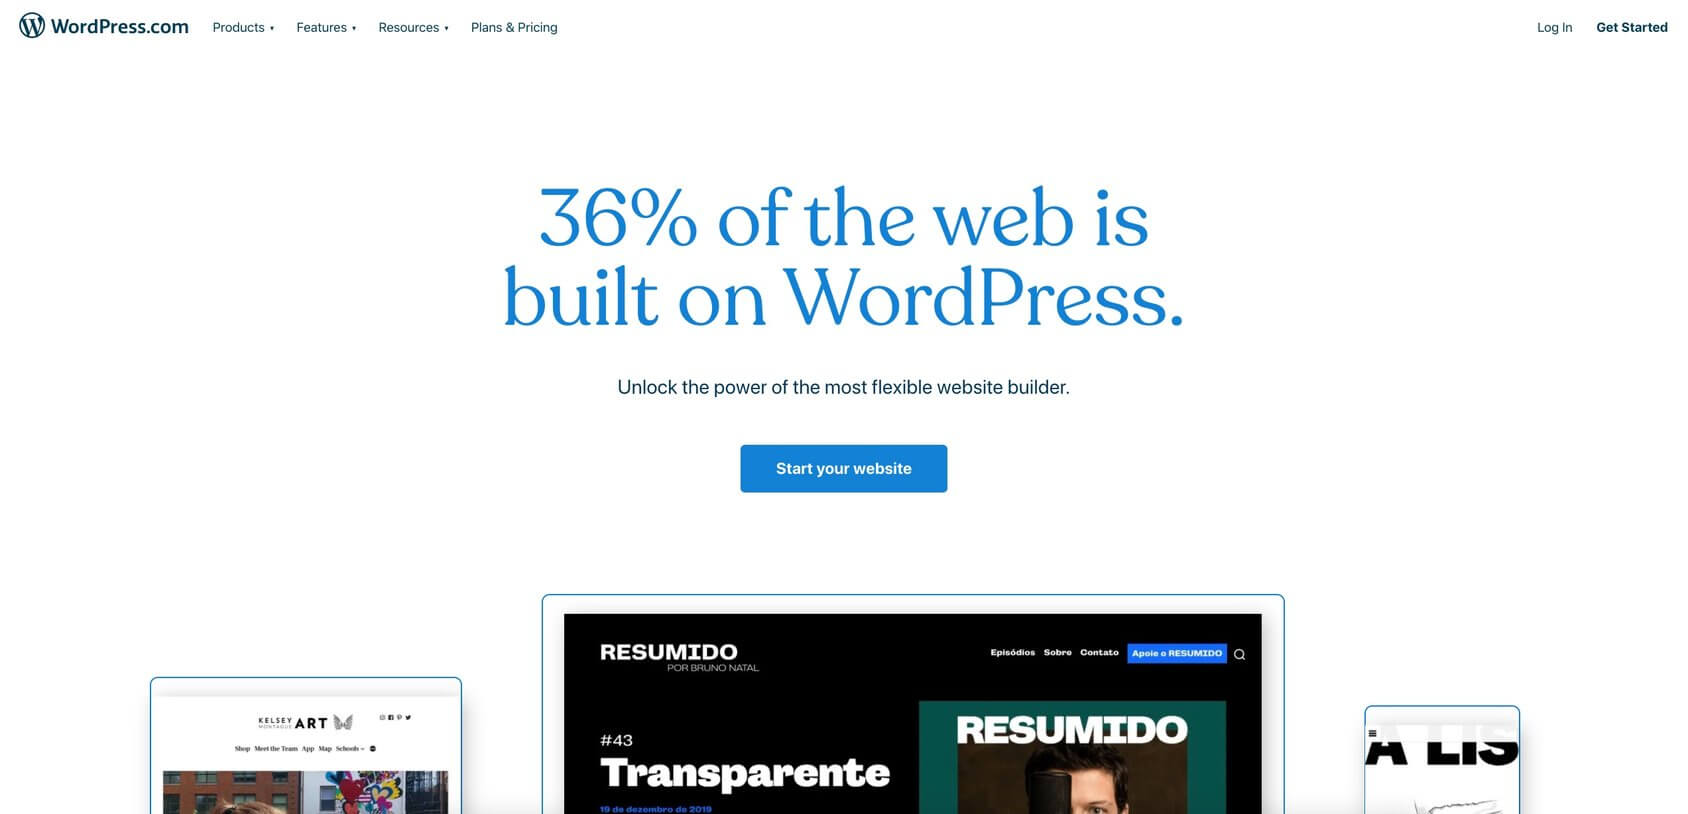 WordPress.com tuisblad